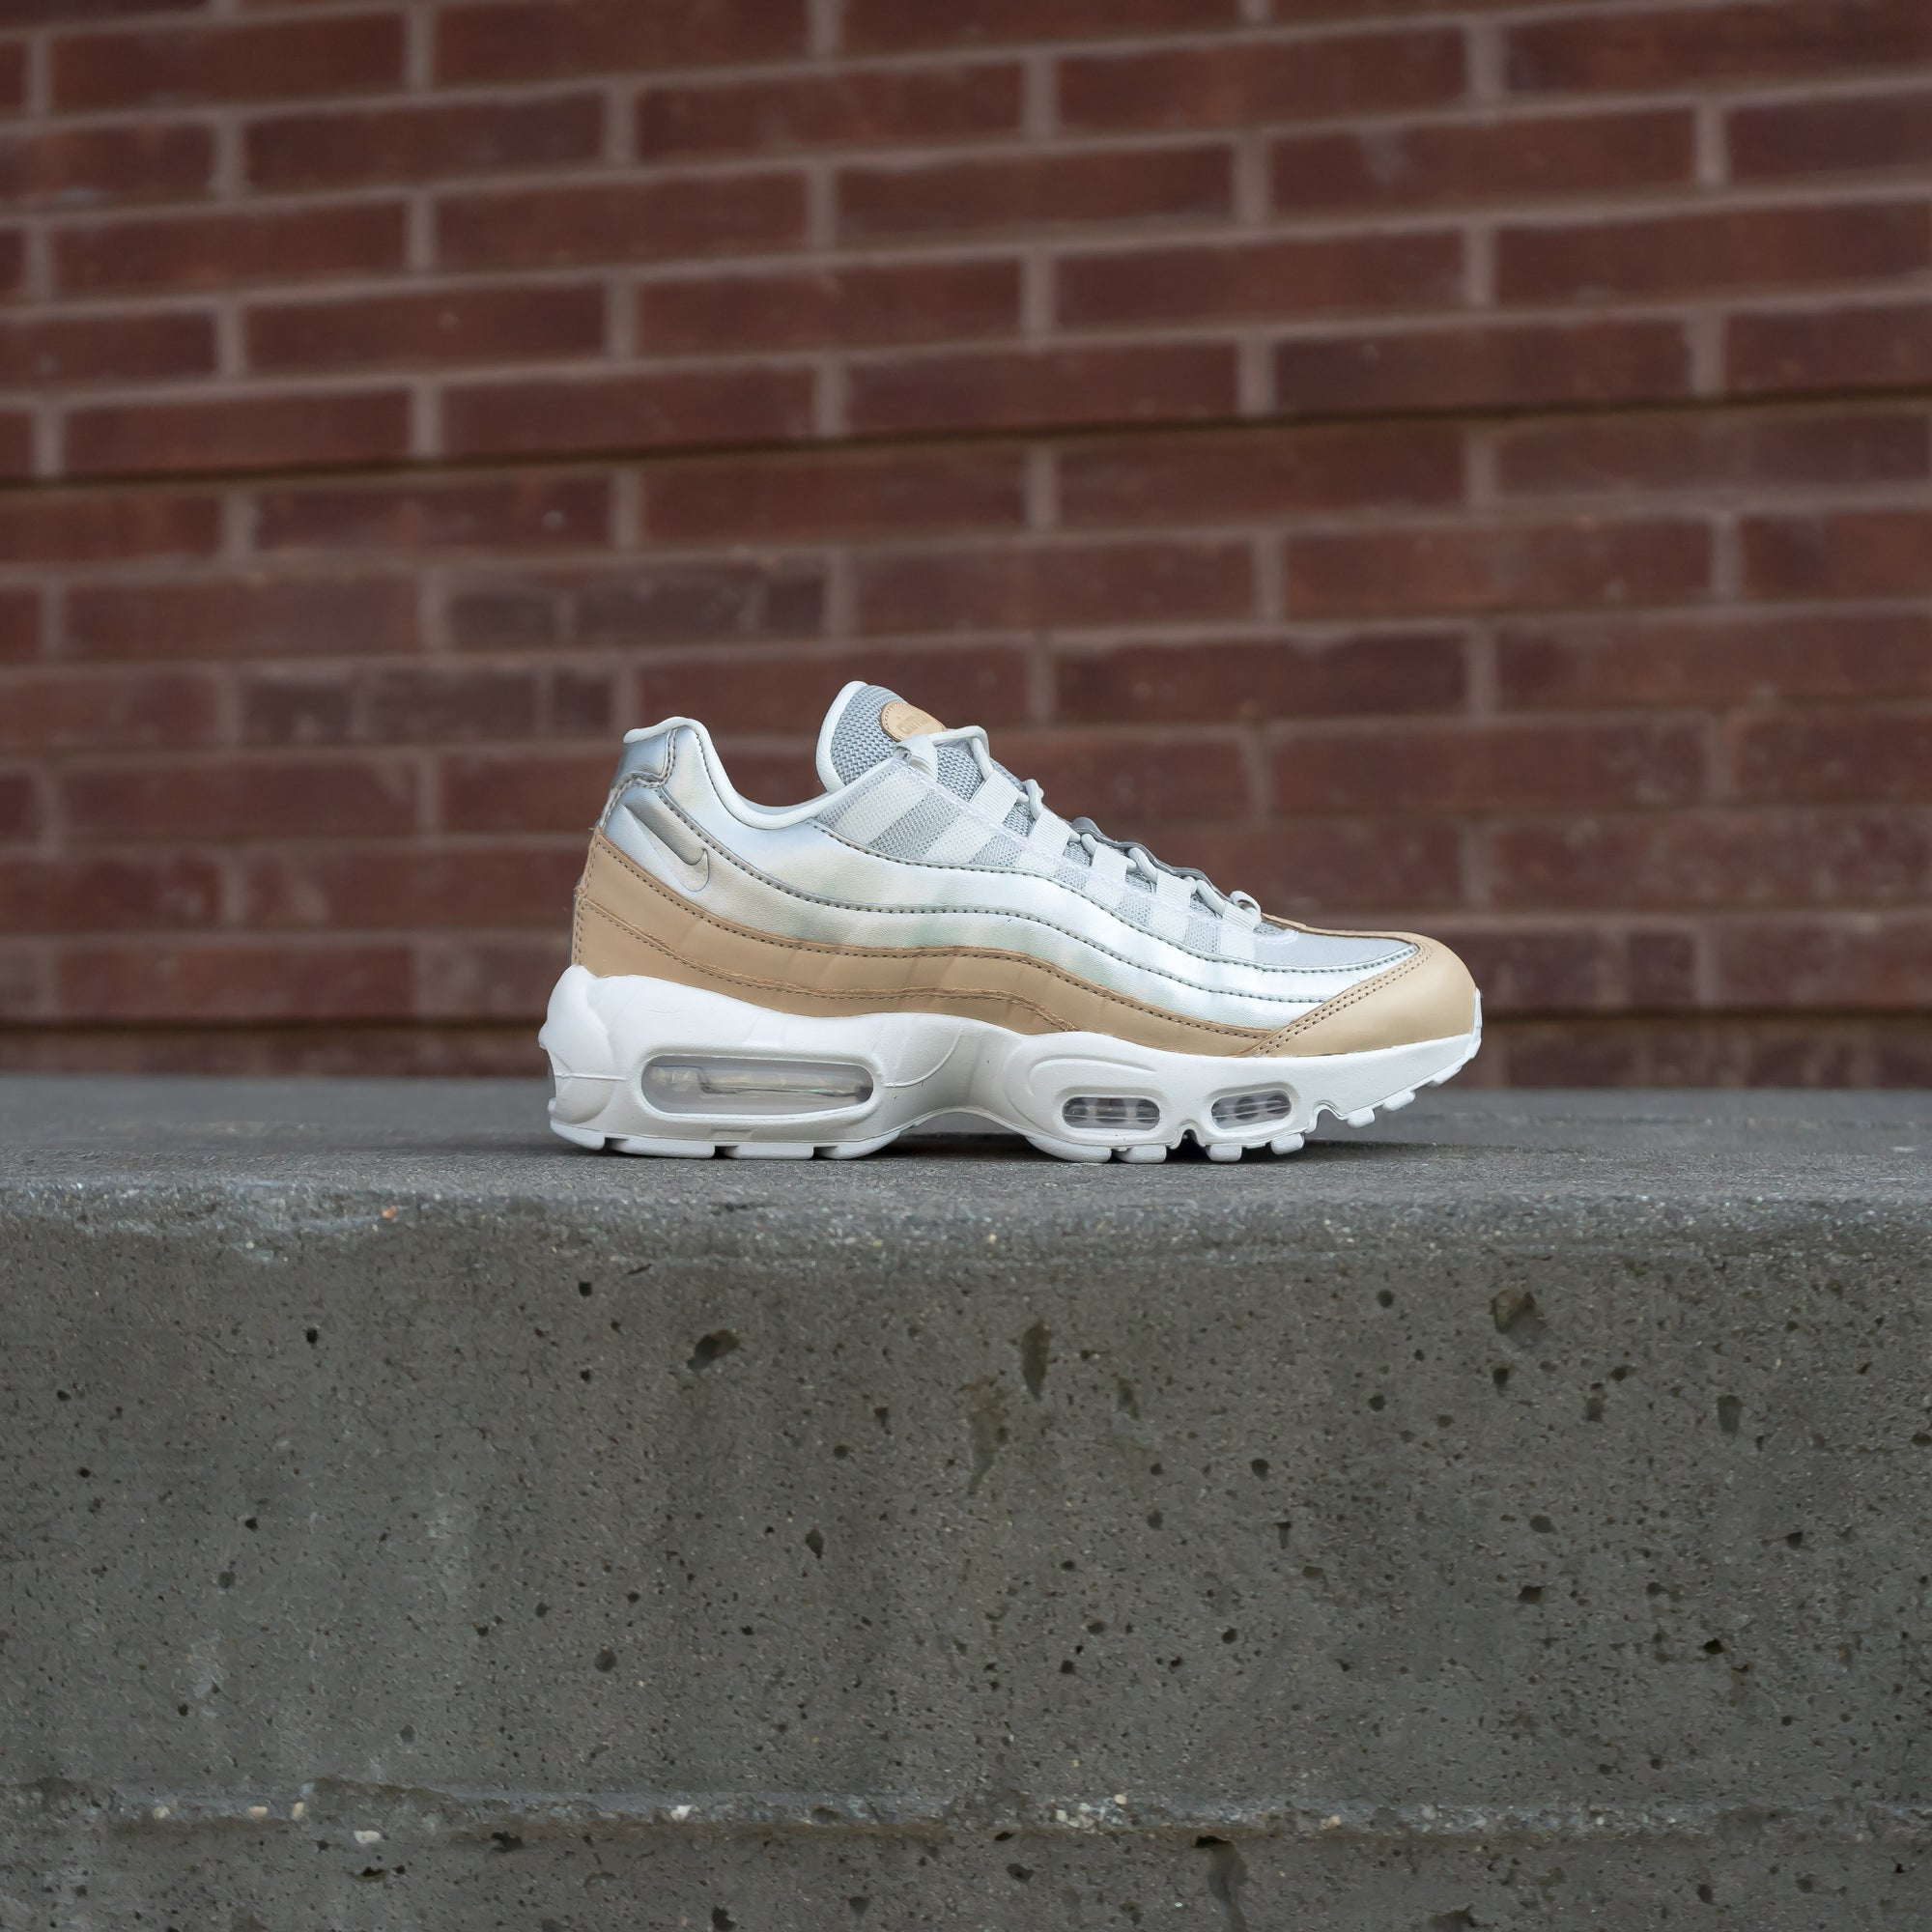 Nike W Air Max 95 PRM Available Now!